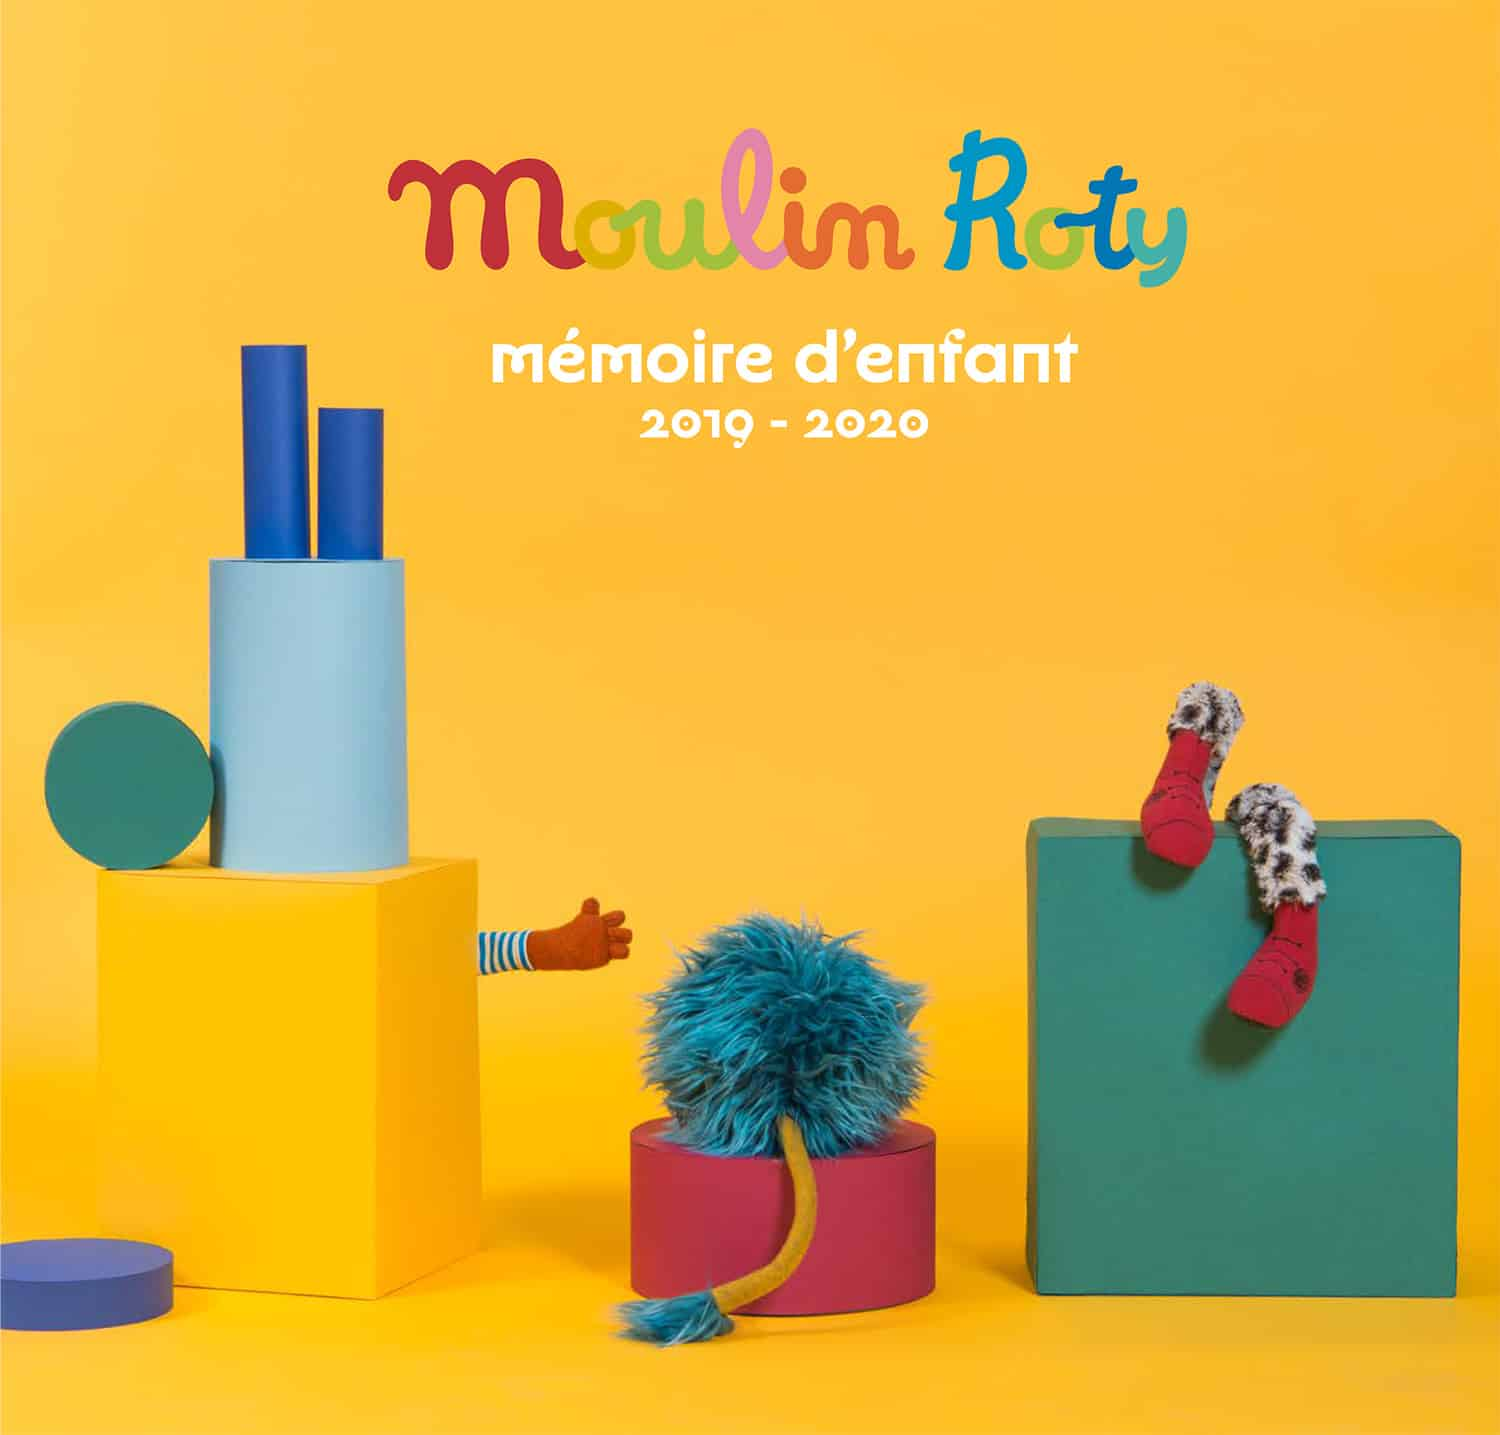 moulin roty memoire catalogue 2019-20